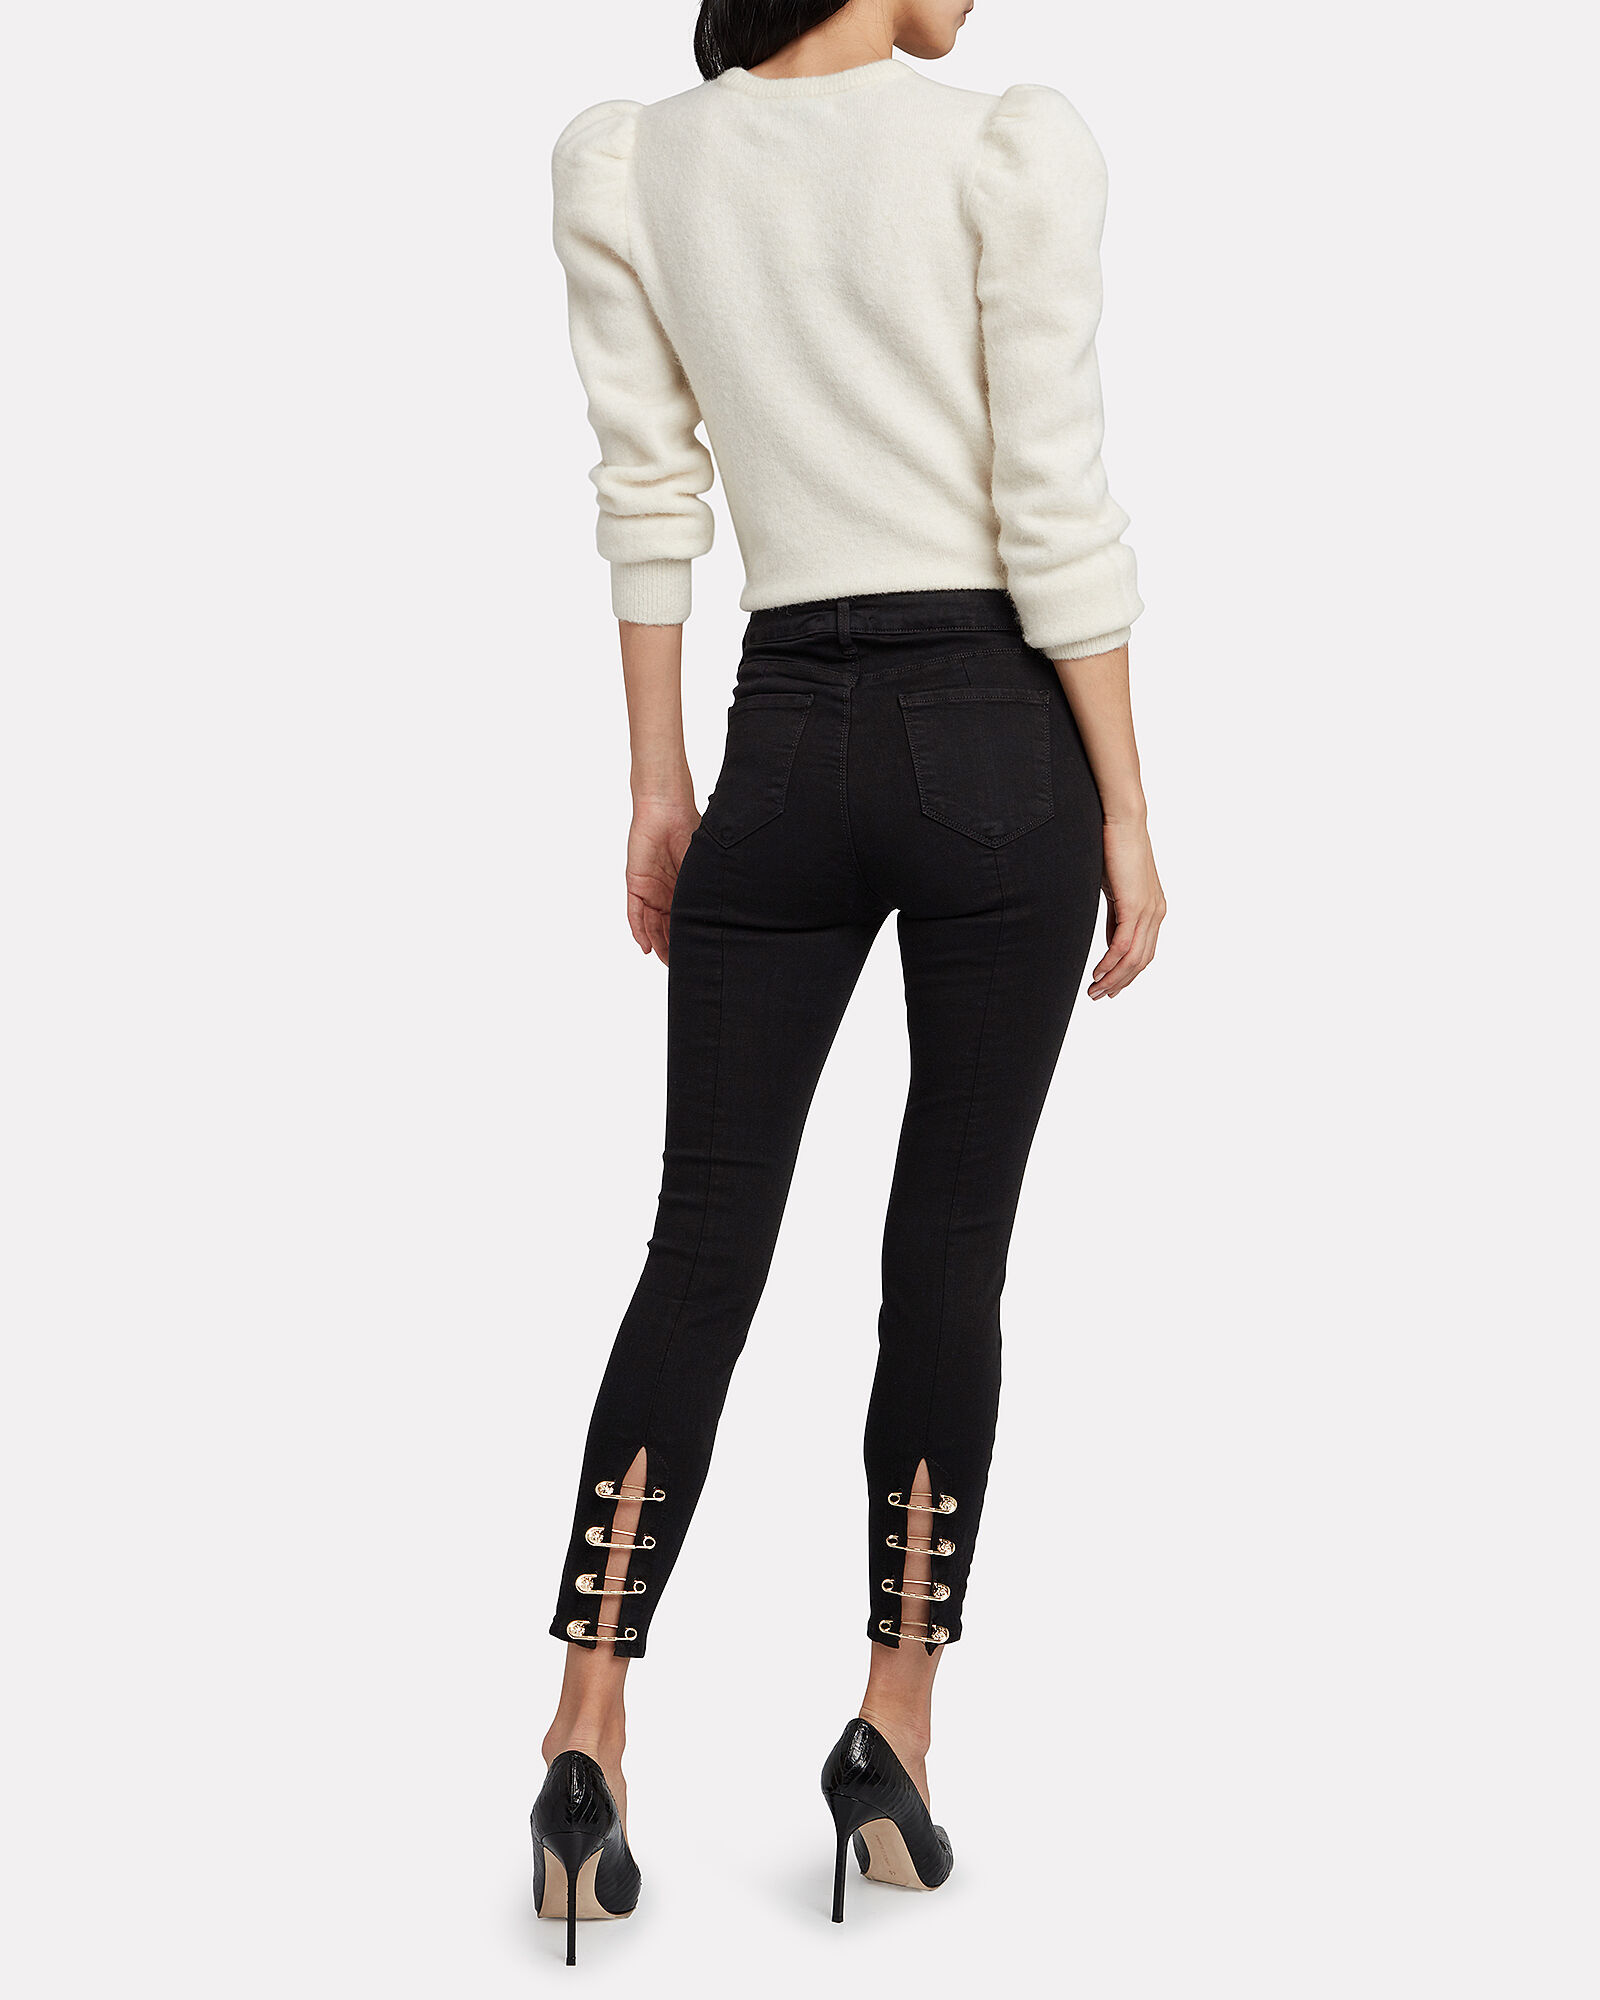 Nicolette High-Rise Safety Pin Jeans, BLACK, hi-res